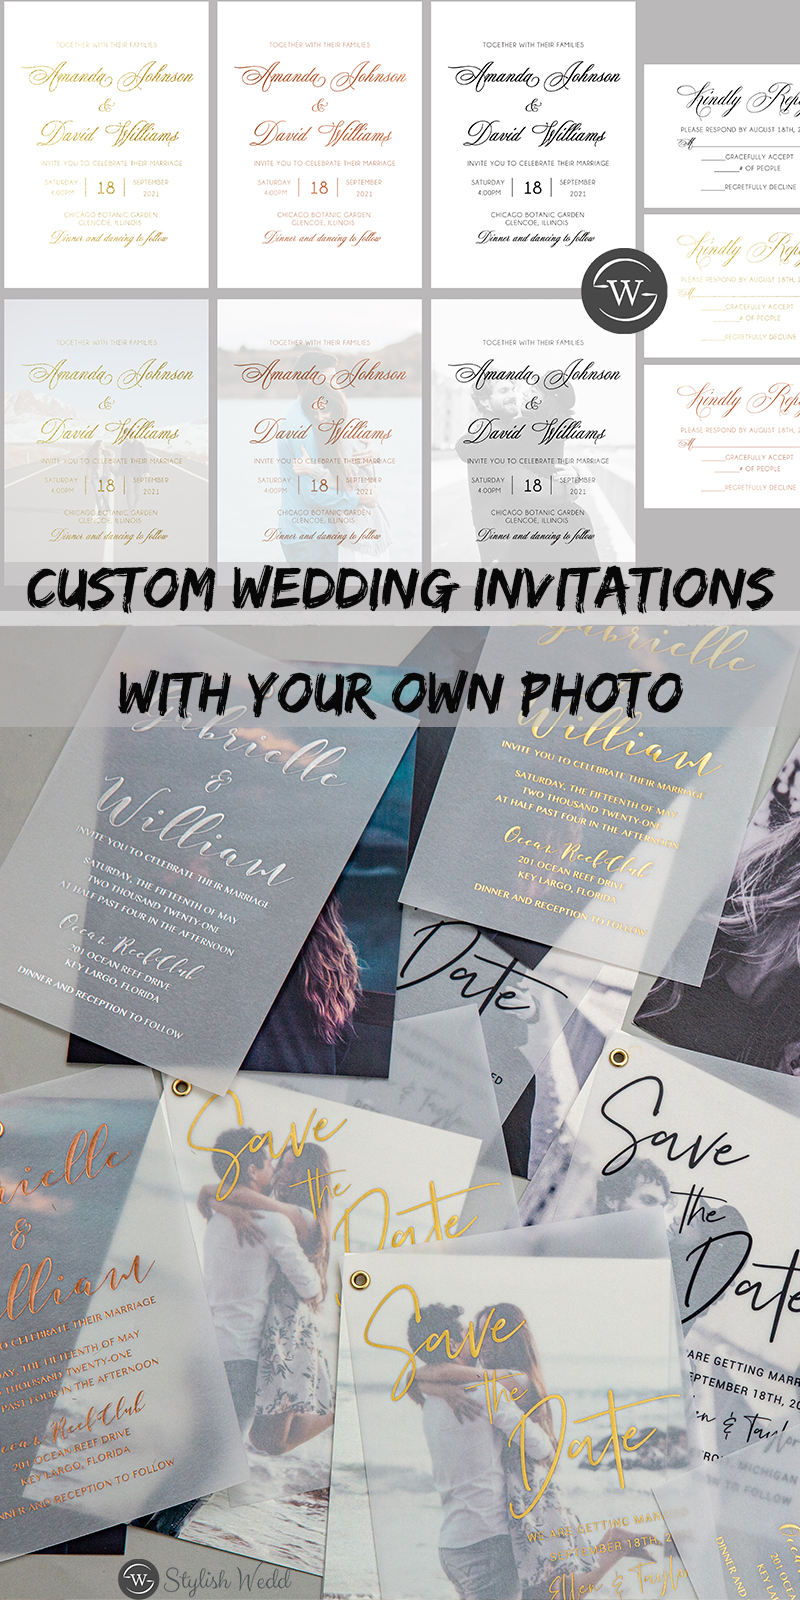 modern and elegant custom wedding invitations with your own photo